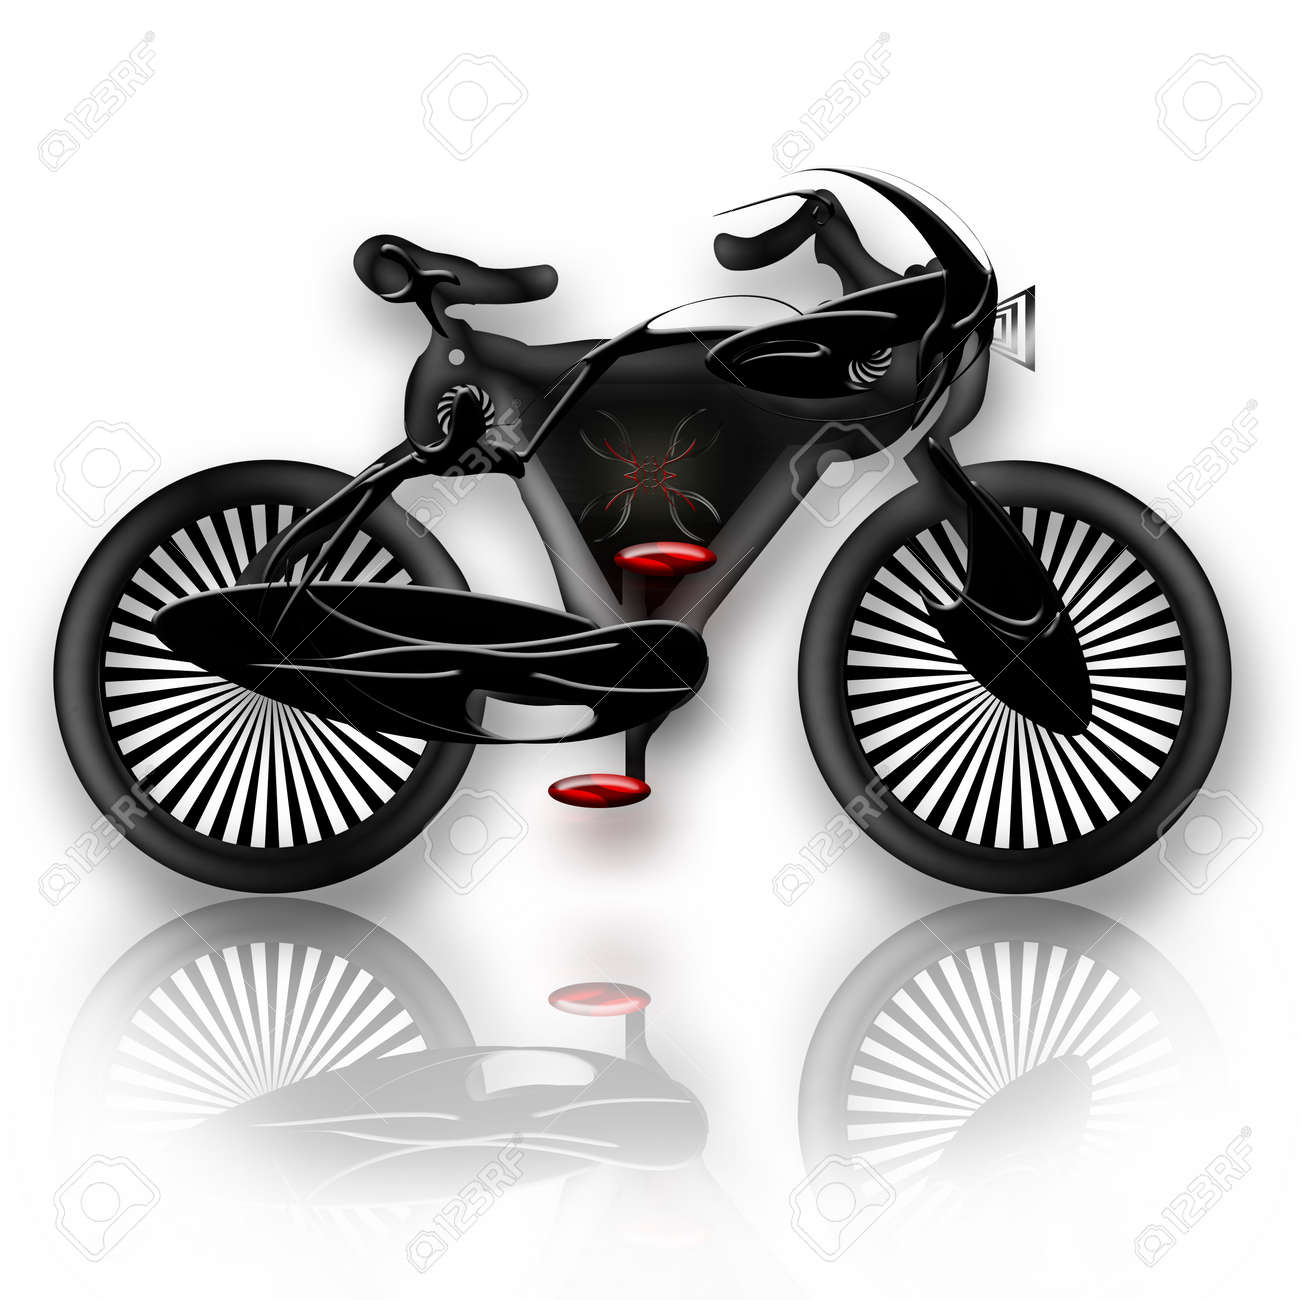 Bicycle Insect, Future concept design insect styled bicycle, illustration with reflection over white background Stock Photo - 7087873